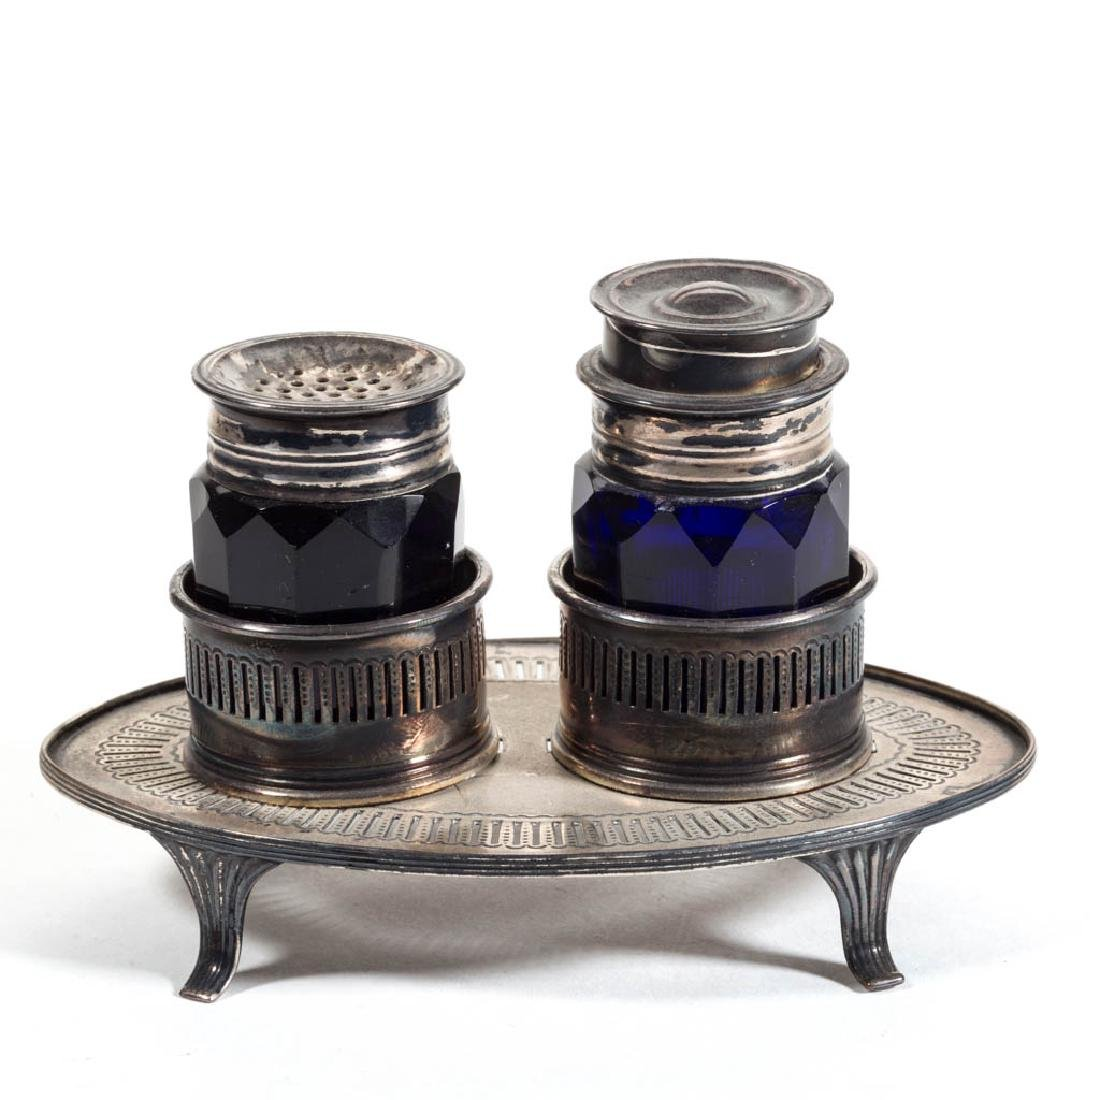 ENGLISH CUT GLASS AND SILVER-PLATED INKSTAND